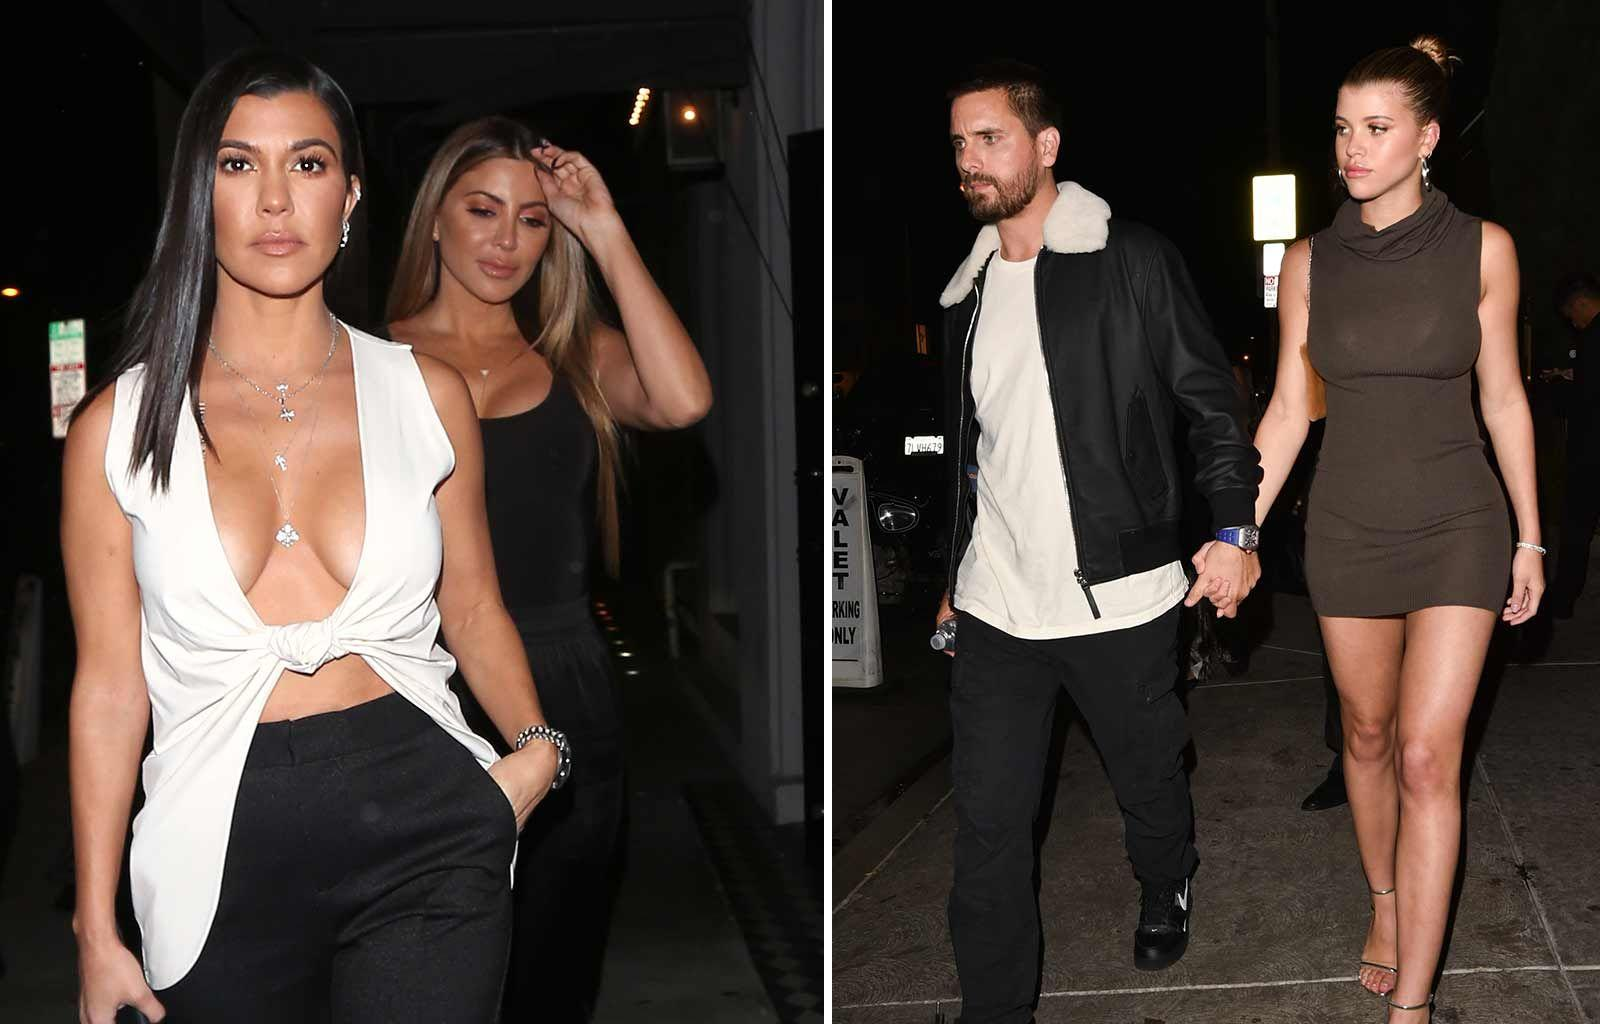 KUWK: Here's How Sofia Richie Feels About Scott Disick Being With Ex Kourtney Kardashian On Her B-Day Weekend!